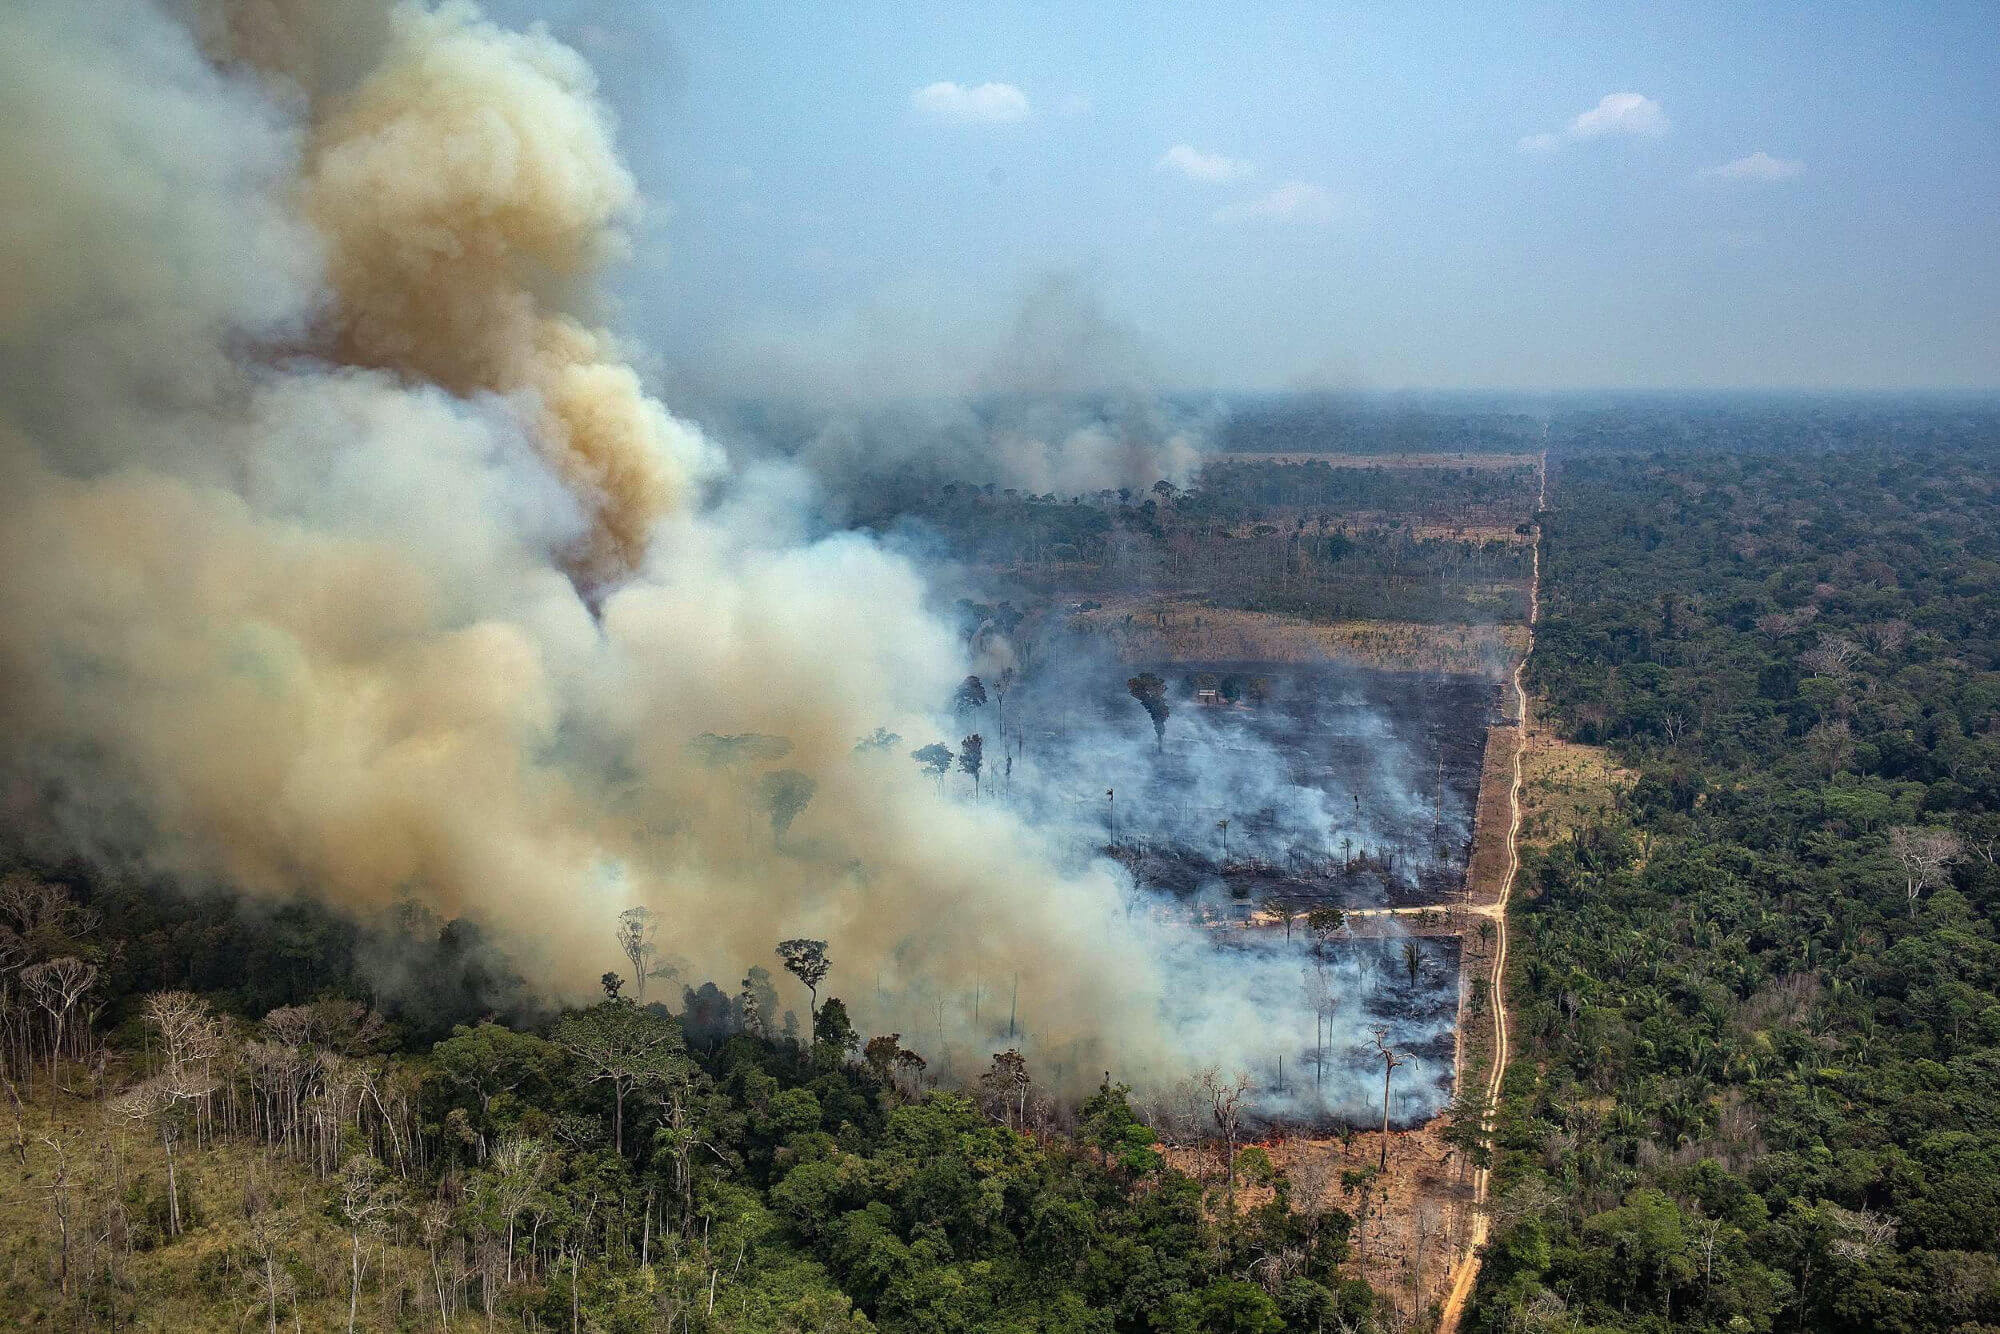 Brazilian warplanes dump thousands of gallons of water on Amazon fires